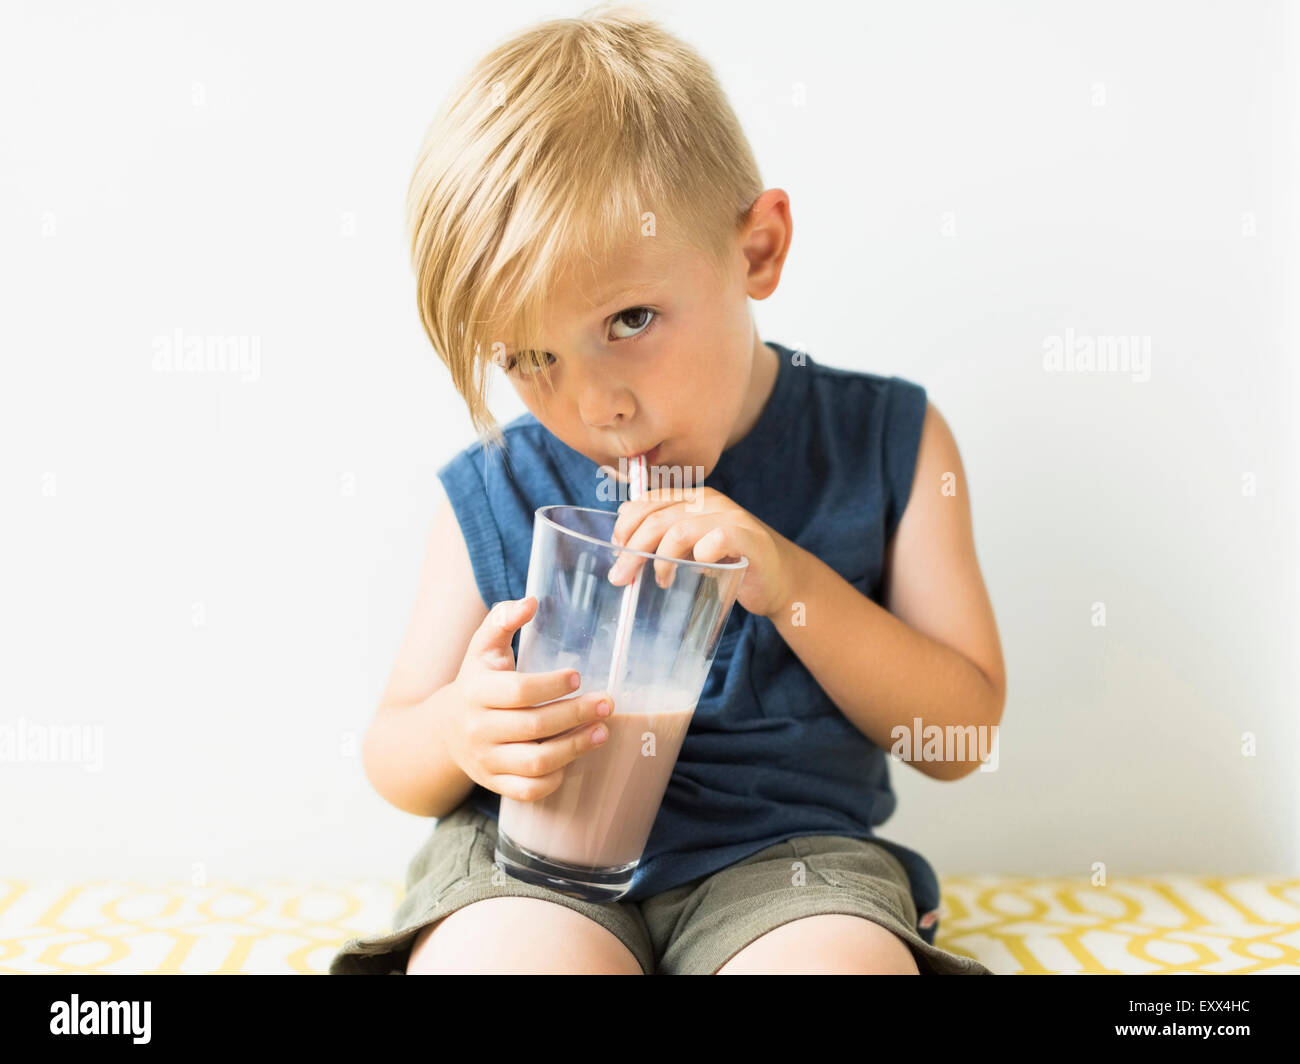 Young boy (2-3) drinking milkshake - Stock Image